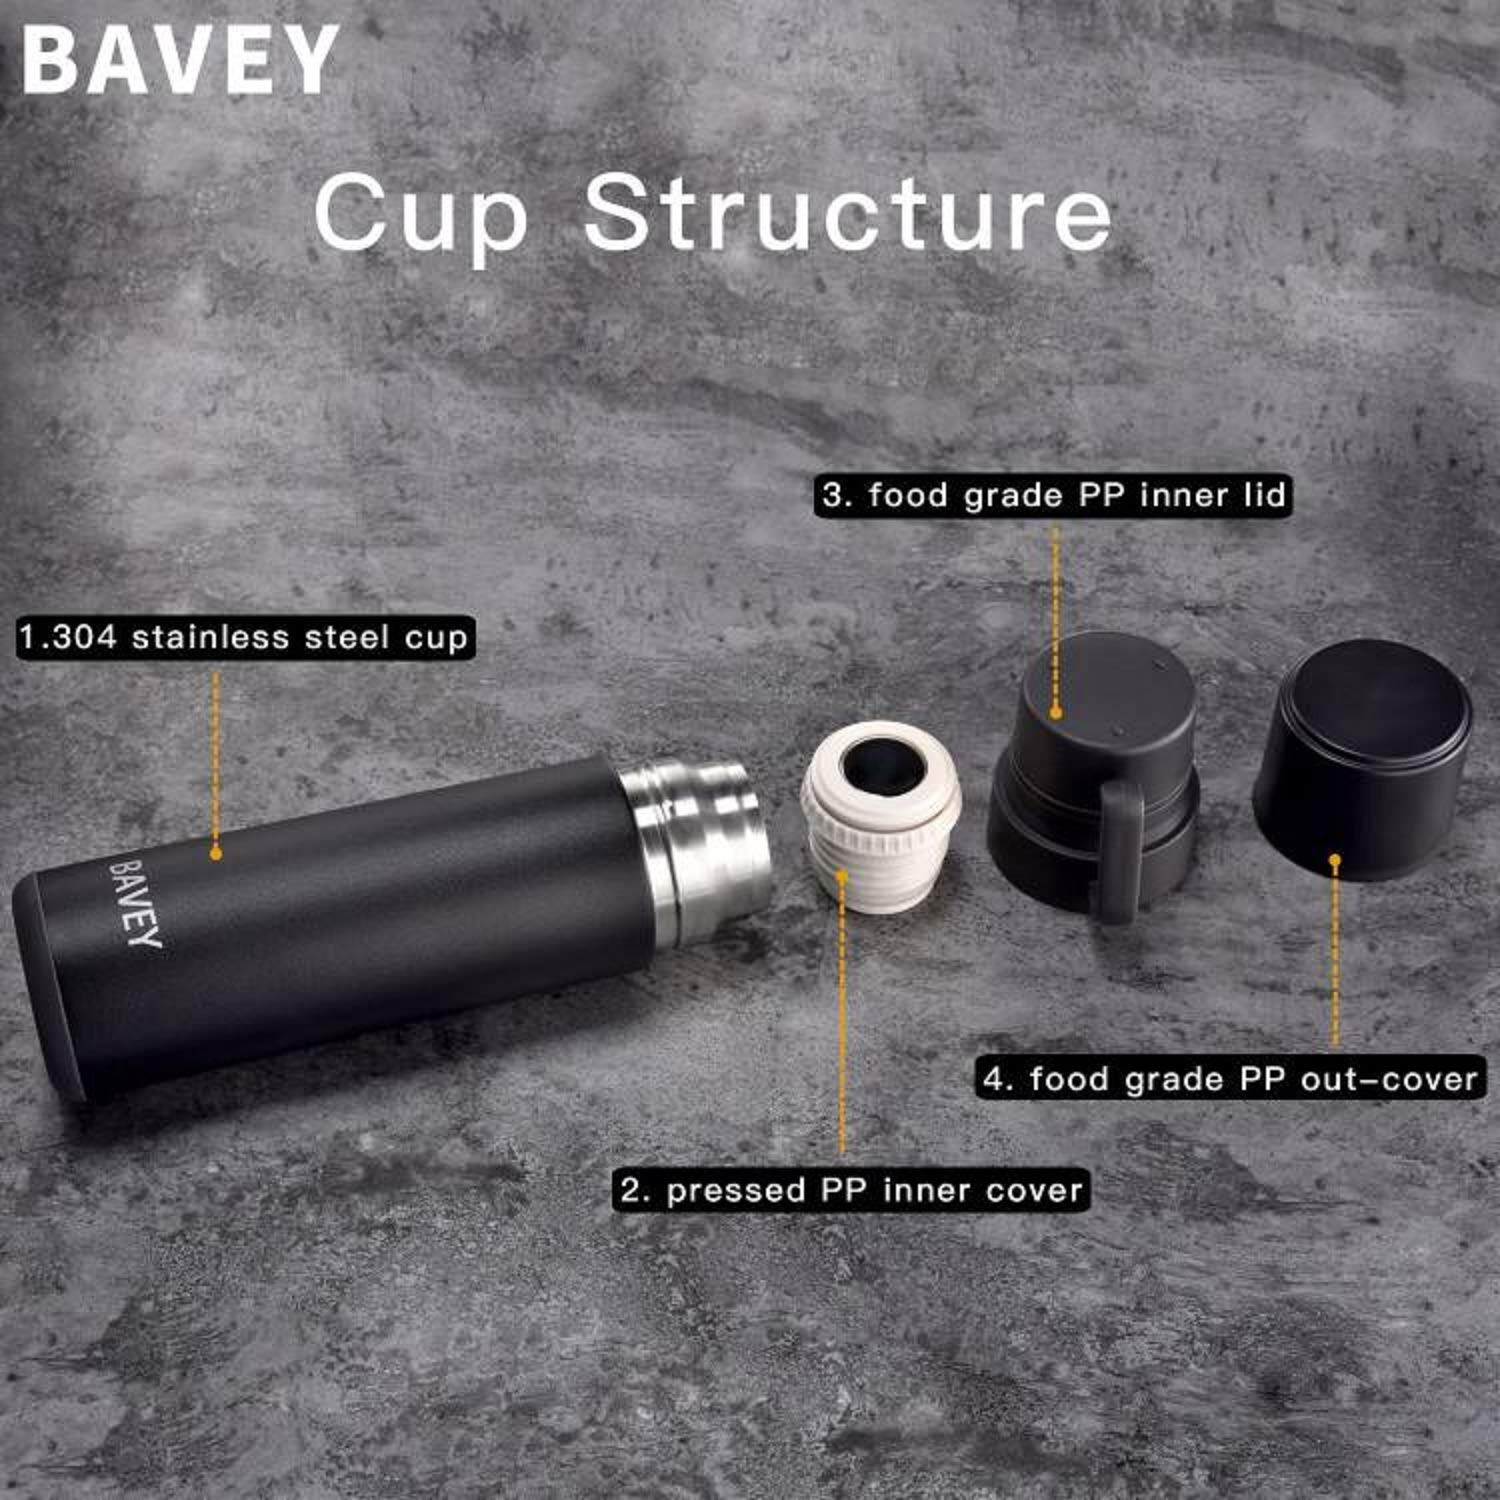 Bavey Insulated Water Bottle Portable Stainless Steel Coffee Travel Mug for Food Stainless Wide Mouth 600ml//21 OZ Double Wall Hot /& Cold Beverage Leak /& Sweat Proof